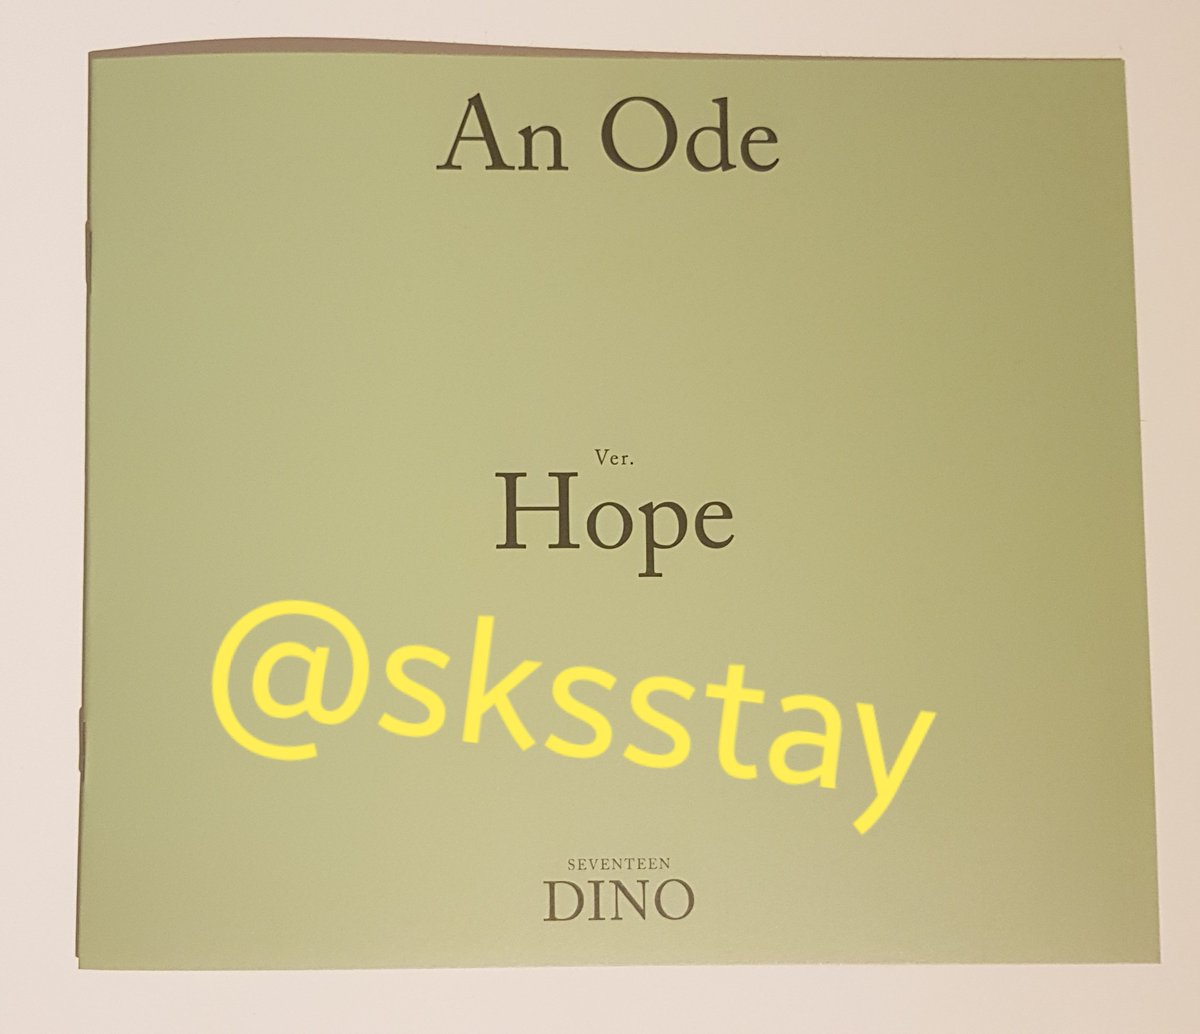 [#WTT] Want to trade Please help RT!  have: DINO mini photo book hope version (see pic) want: seungkwan, jeonghan or wonwoo equivalent  Loc: The Netherlands WW: Europe (EU) only  DM me if you're interested.  #Seventeen #SEVENTEEN_An_Ode